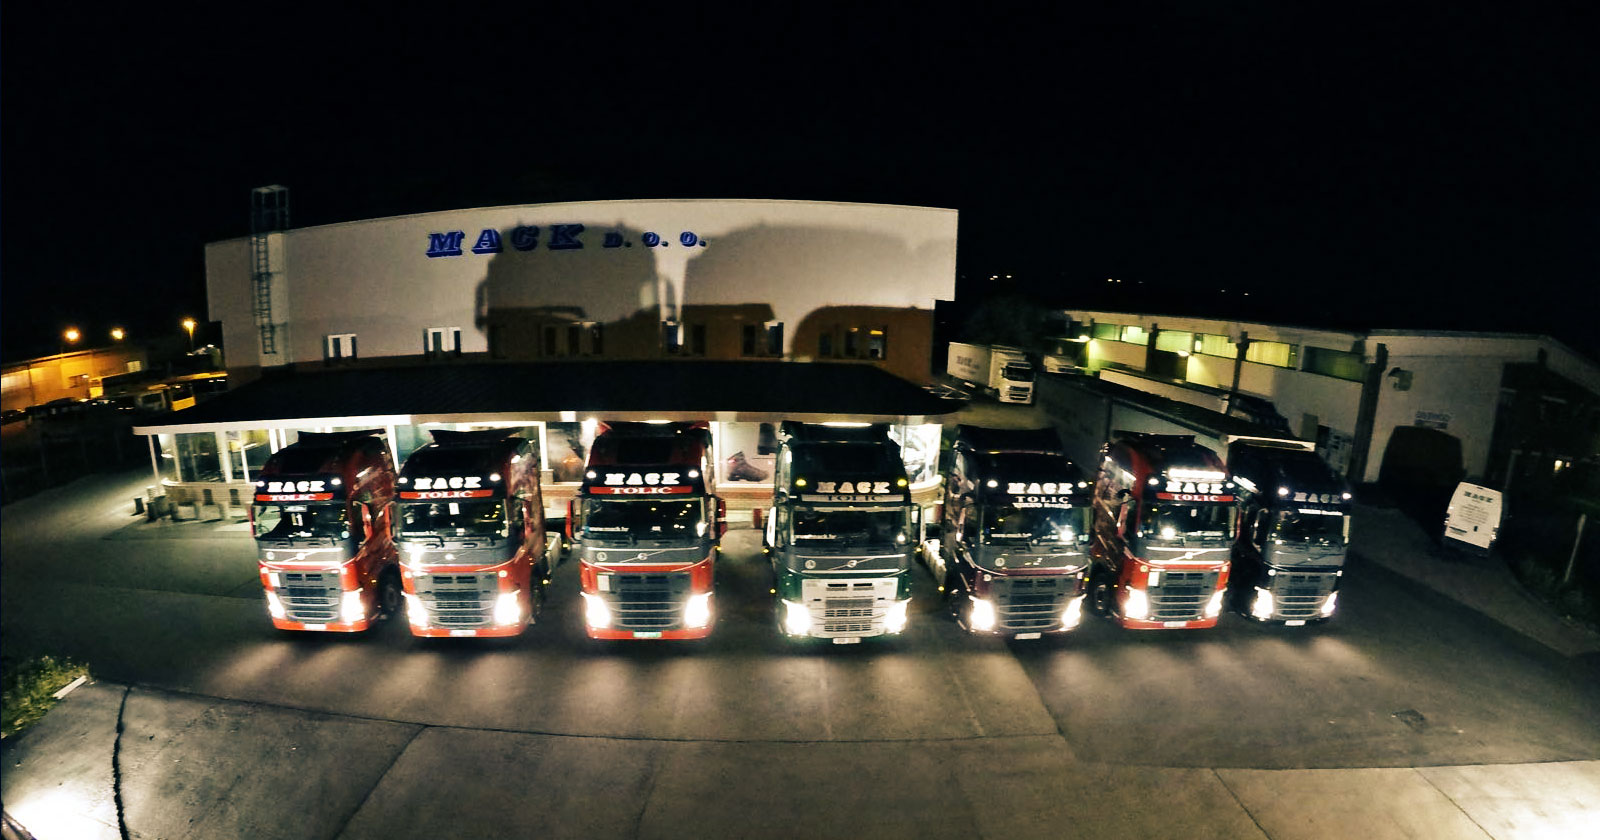 MACK SAMOBOR Night Trucks